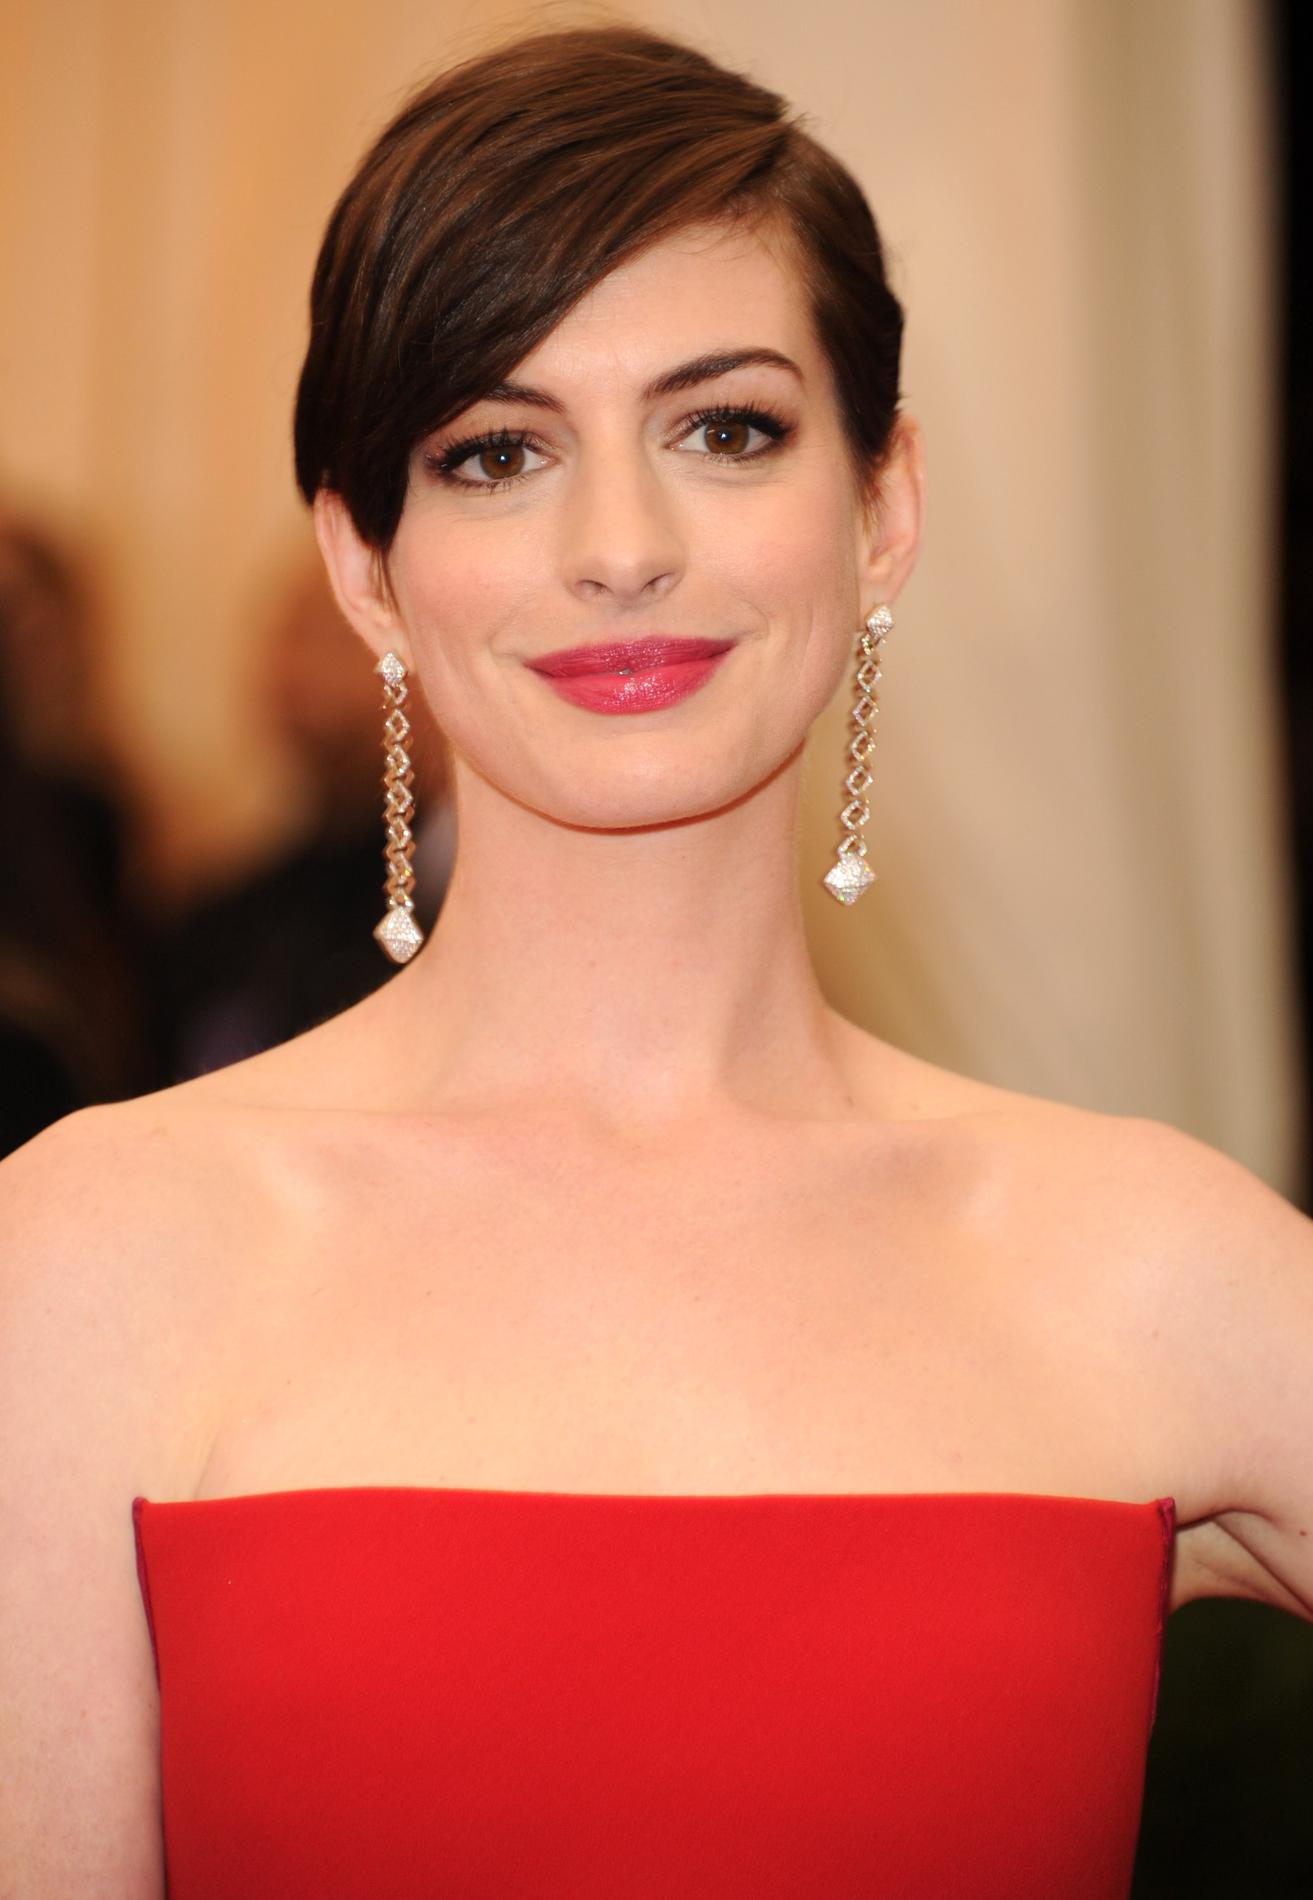 anne hathaway a accouch de son premier enfant madame figaro. Black Bedroom Furniture Sets. Home Design Ideas